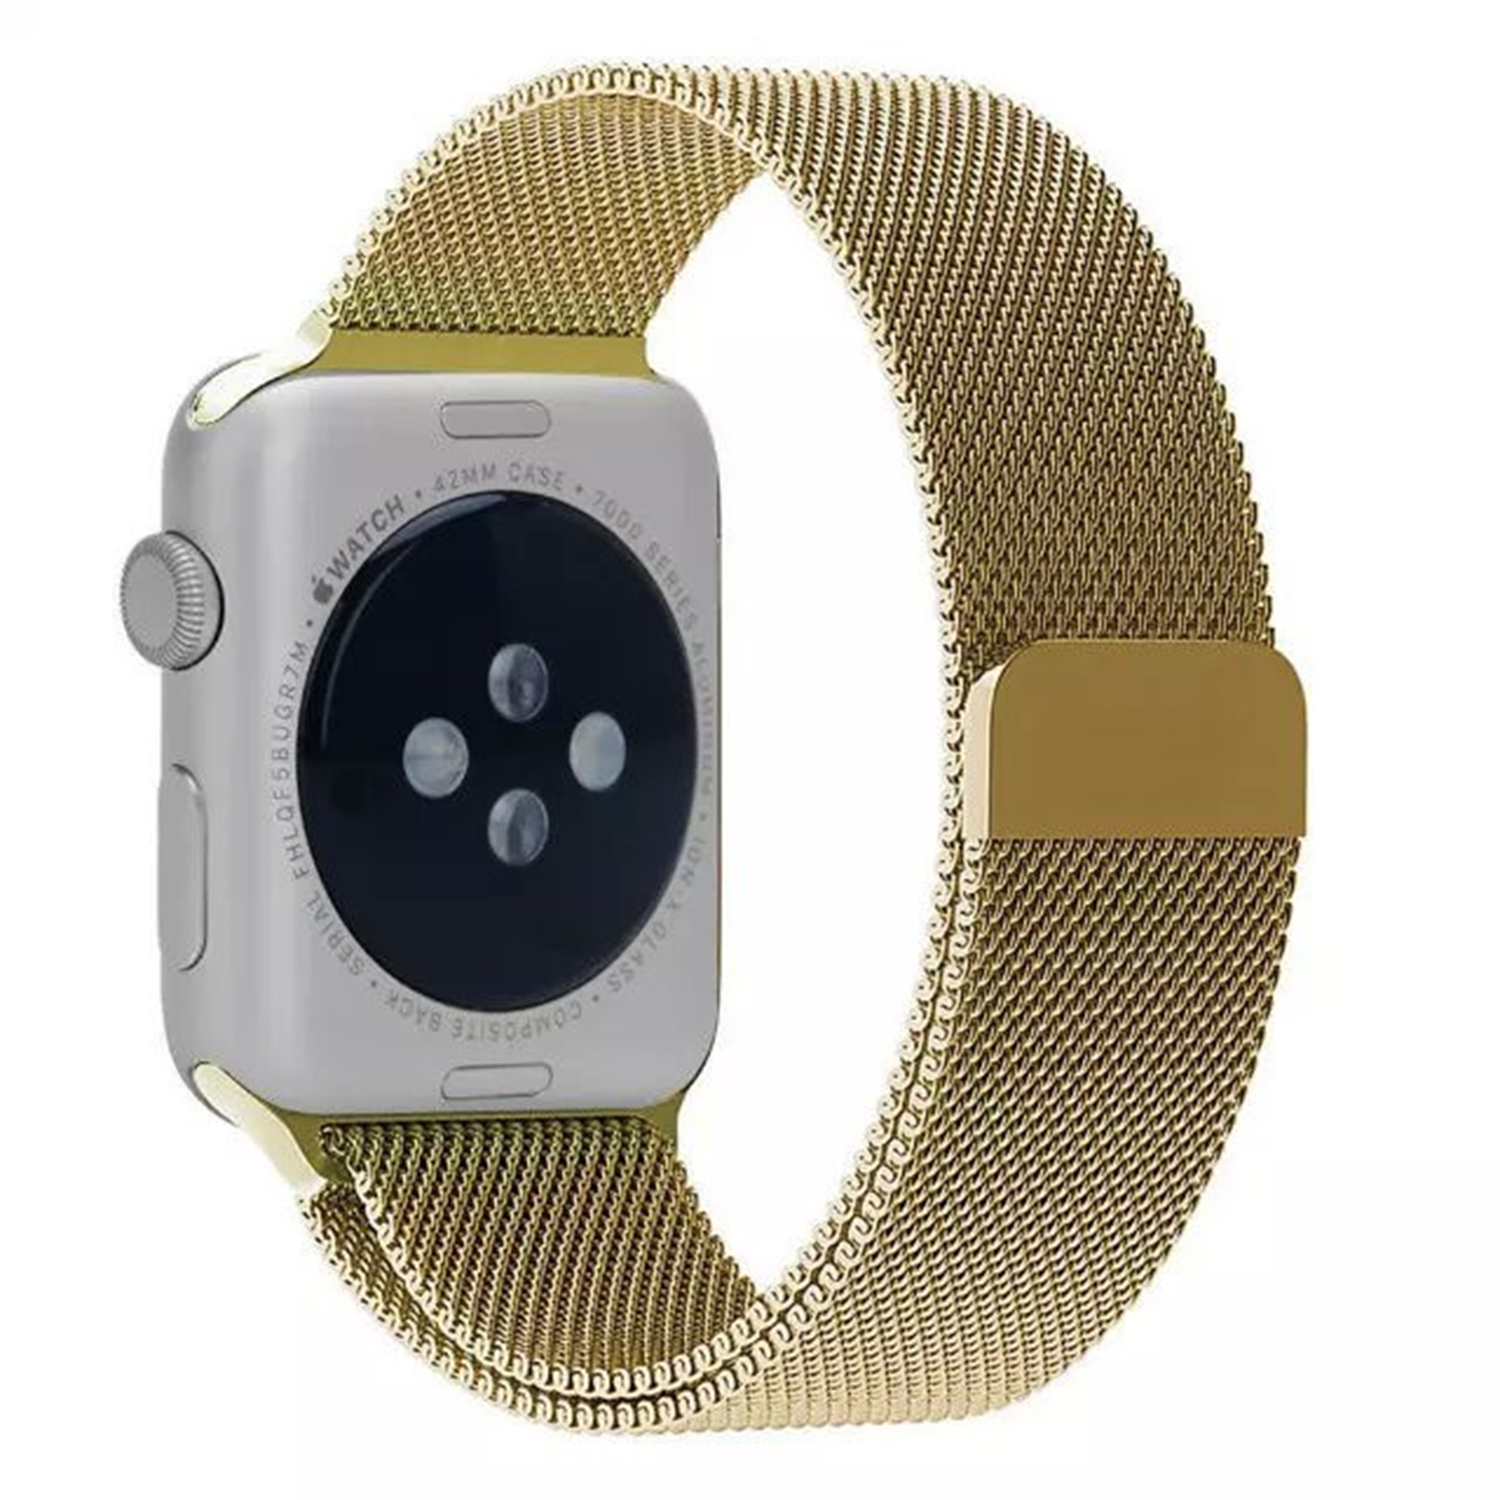 Yemota Pro Apple Watch 38 mm Stainless Steel Magnetarmband - Gold